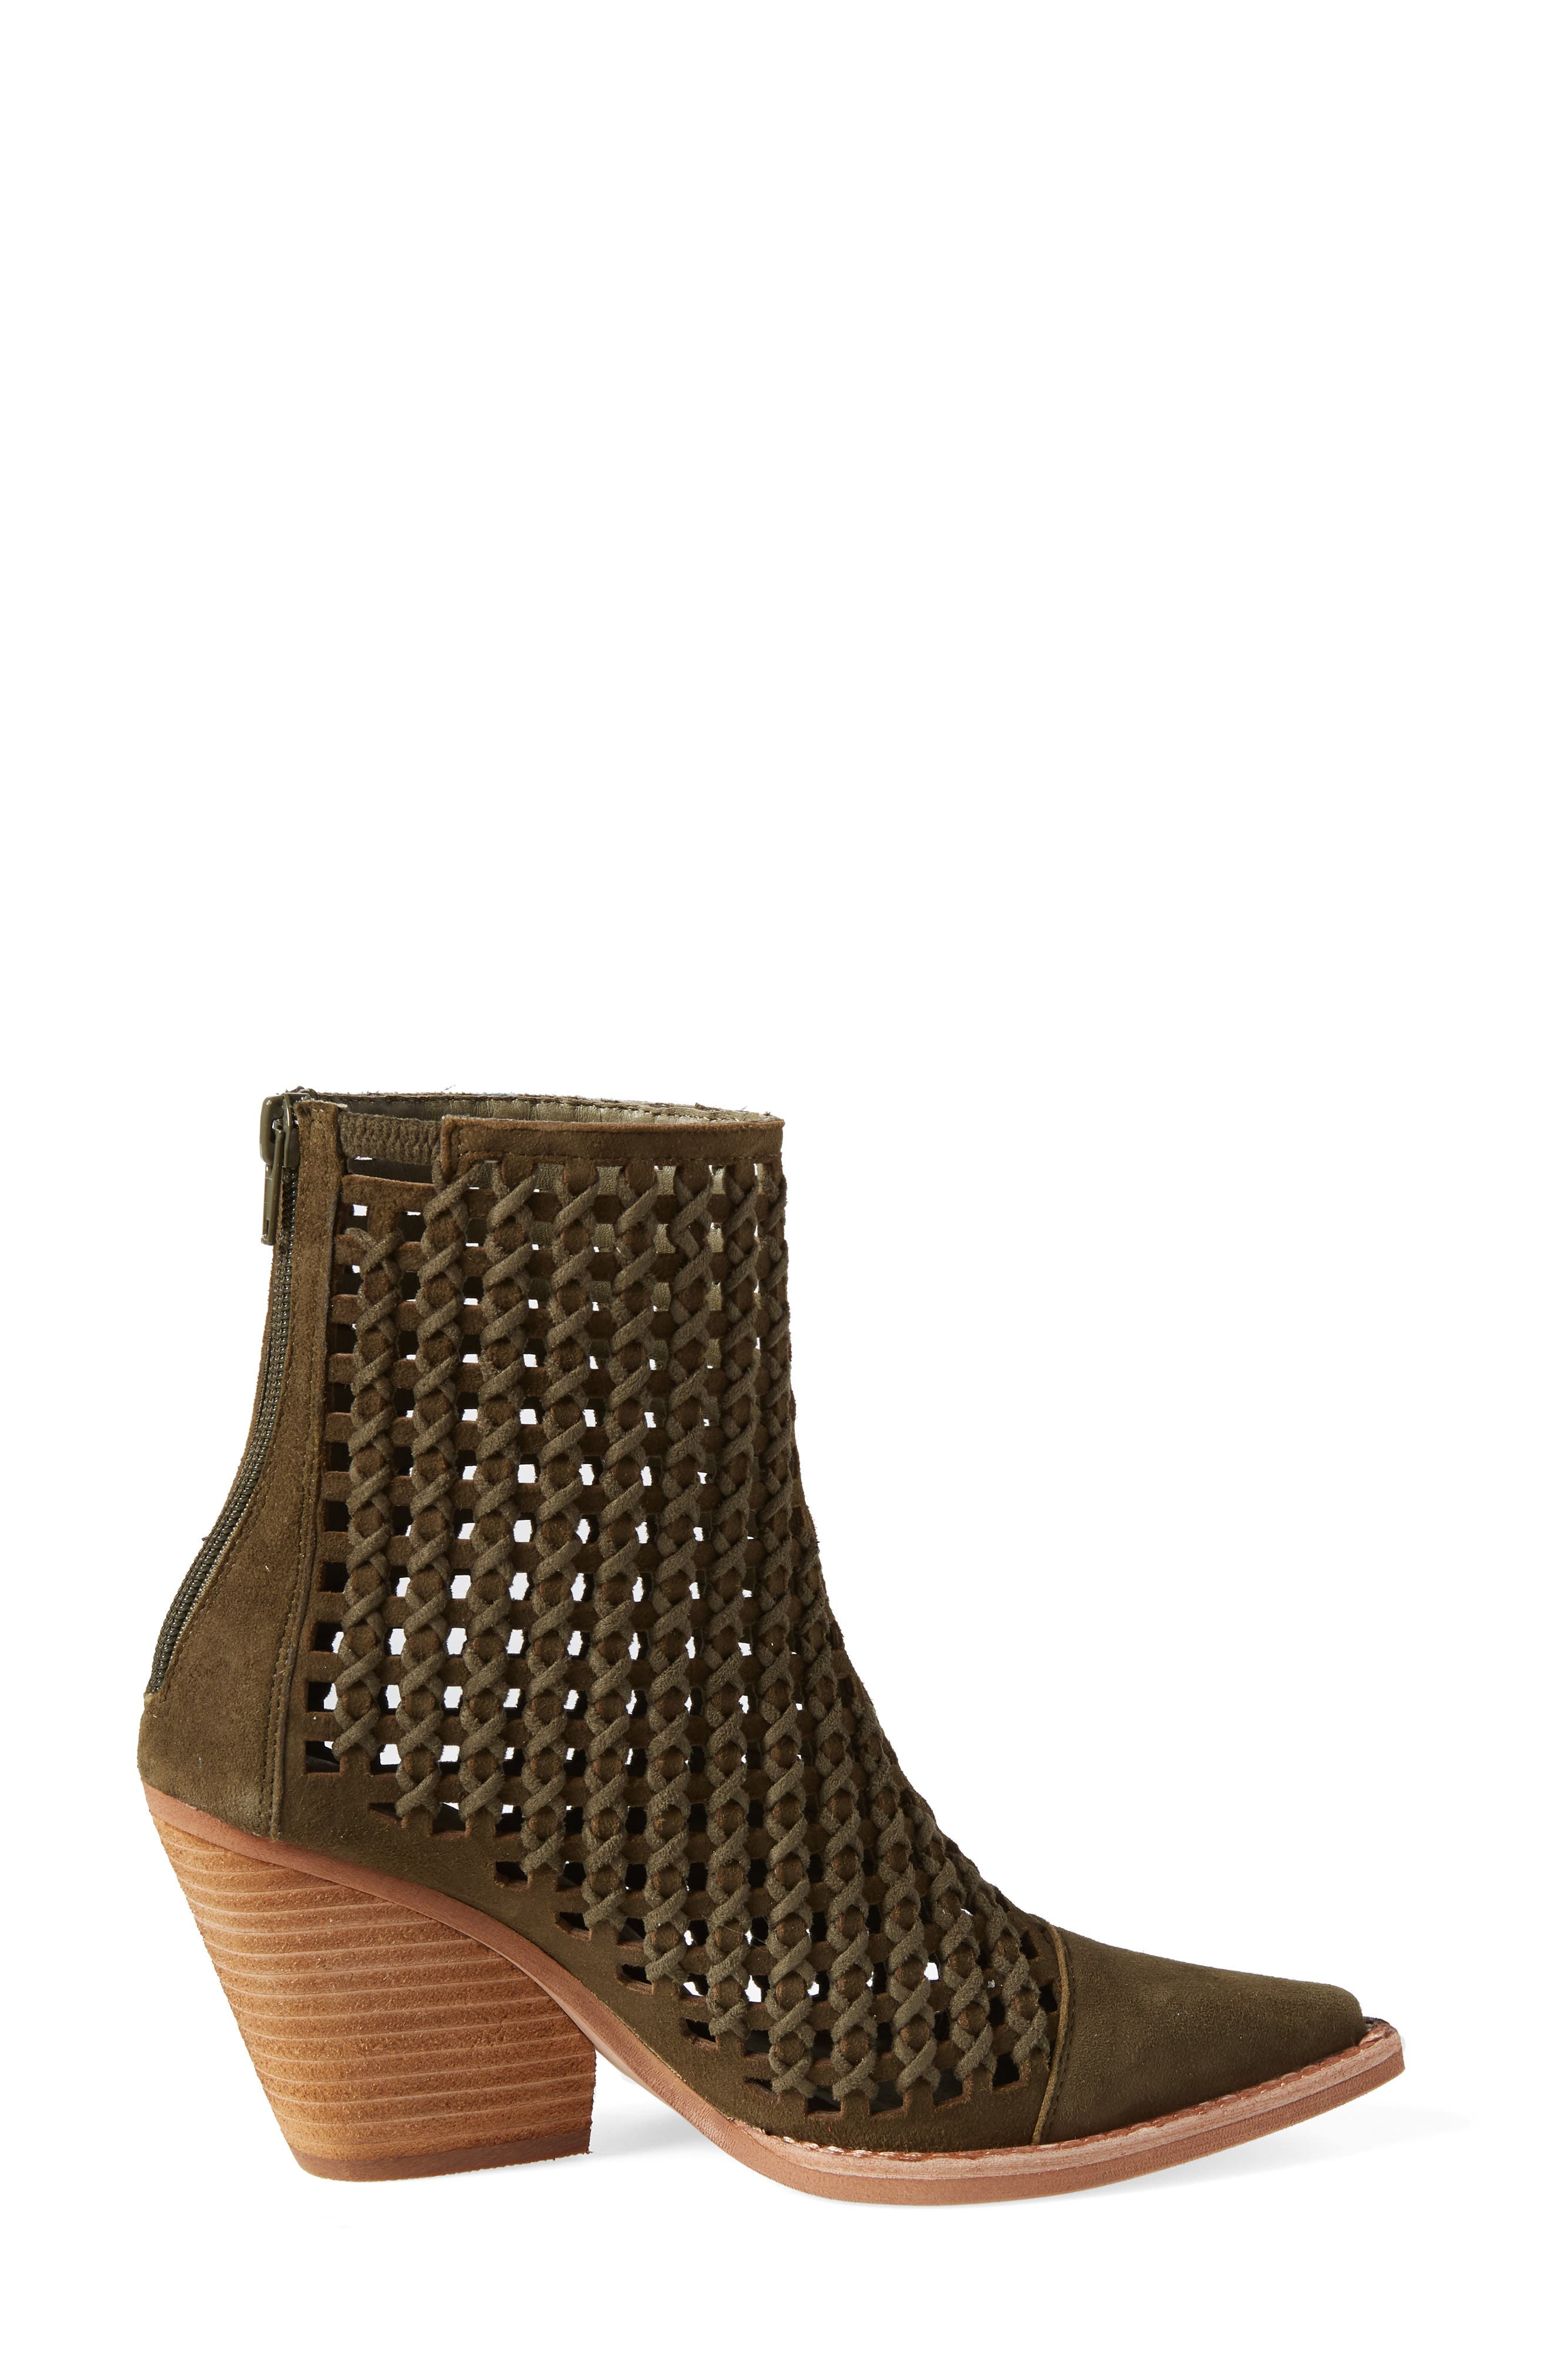 Oakwood Perforated Bootie,                             Alternate thumbnail 3, color,                             KHAKI SUEDE